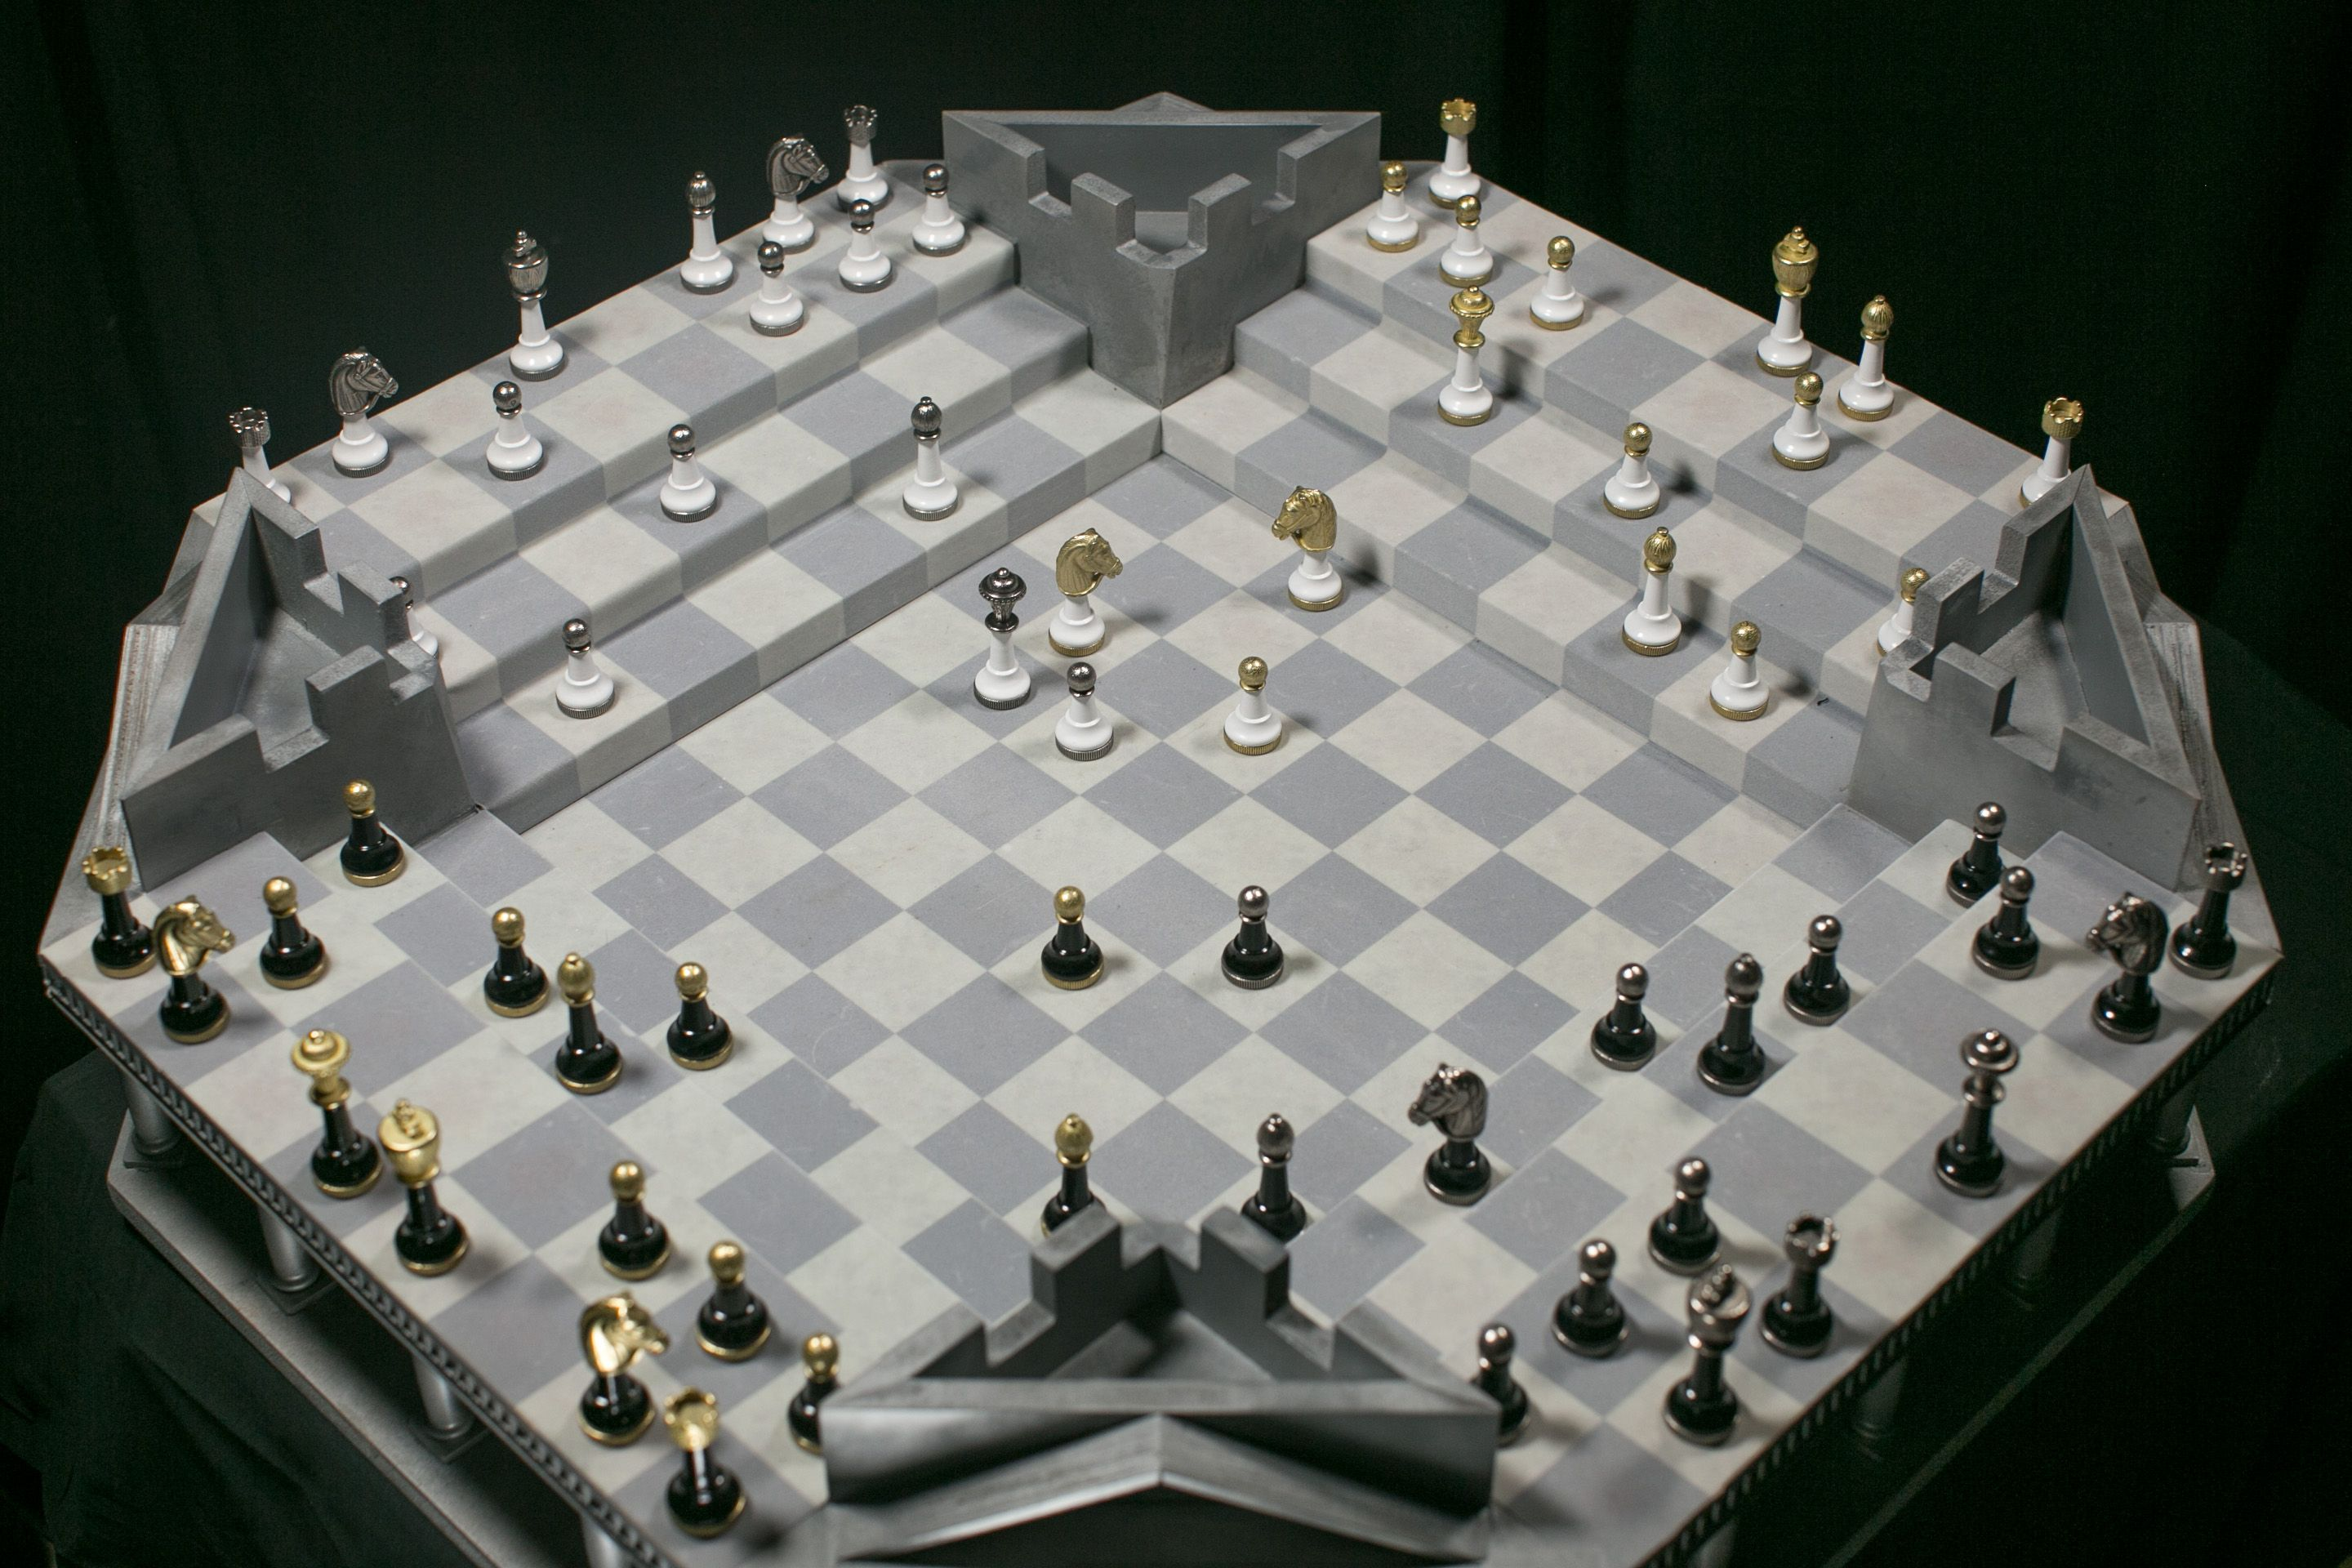 4Kings1War Strategy game inspired by Chess Strategy